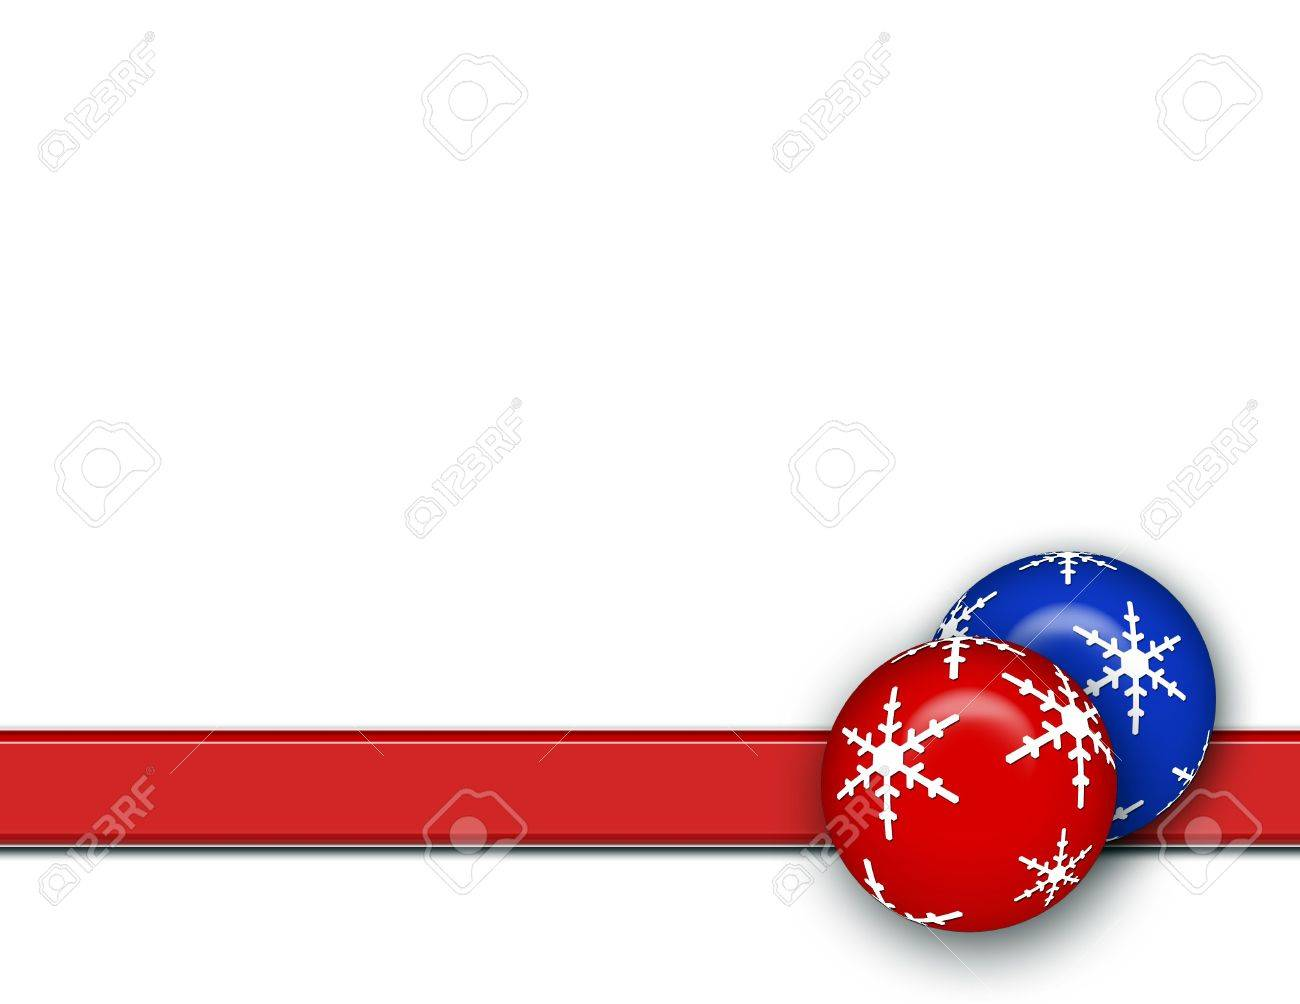 Red white and blue christmas ornaments - Christmas Background With Blue And Red Ornaments Stripe And White Area For Text Stock